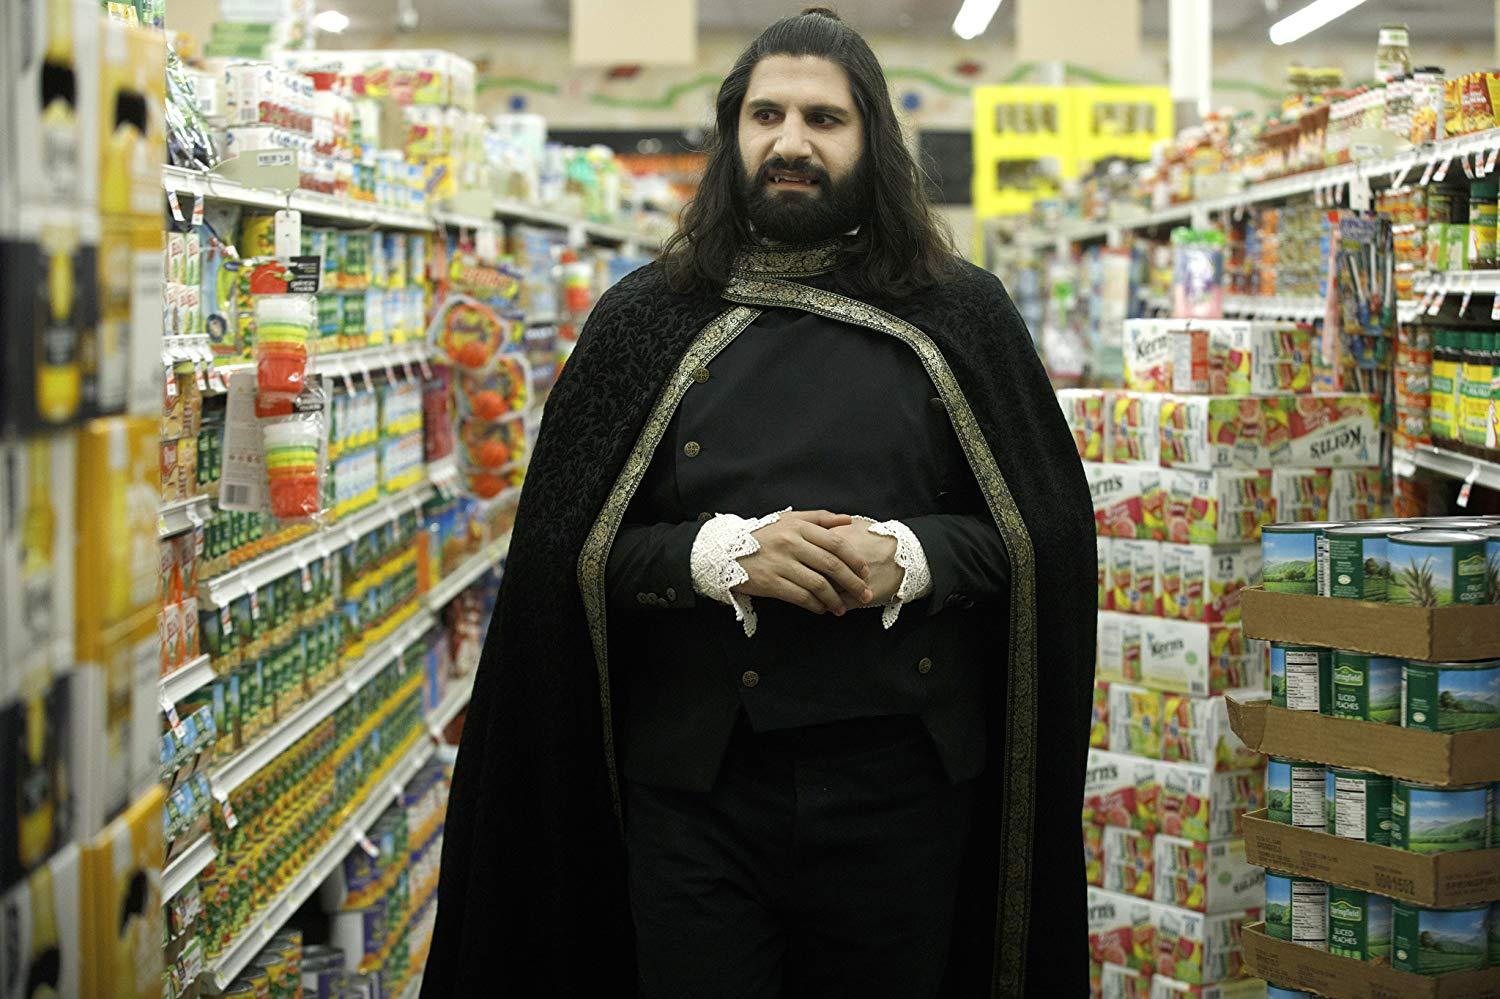 What we do in the shadows (3)